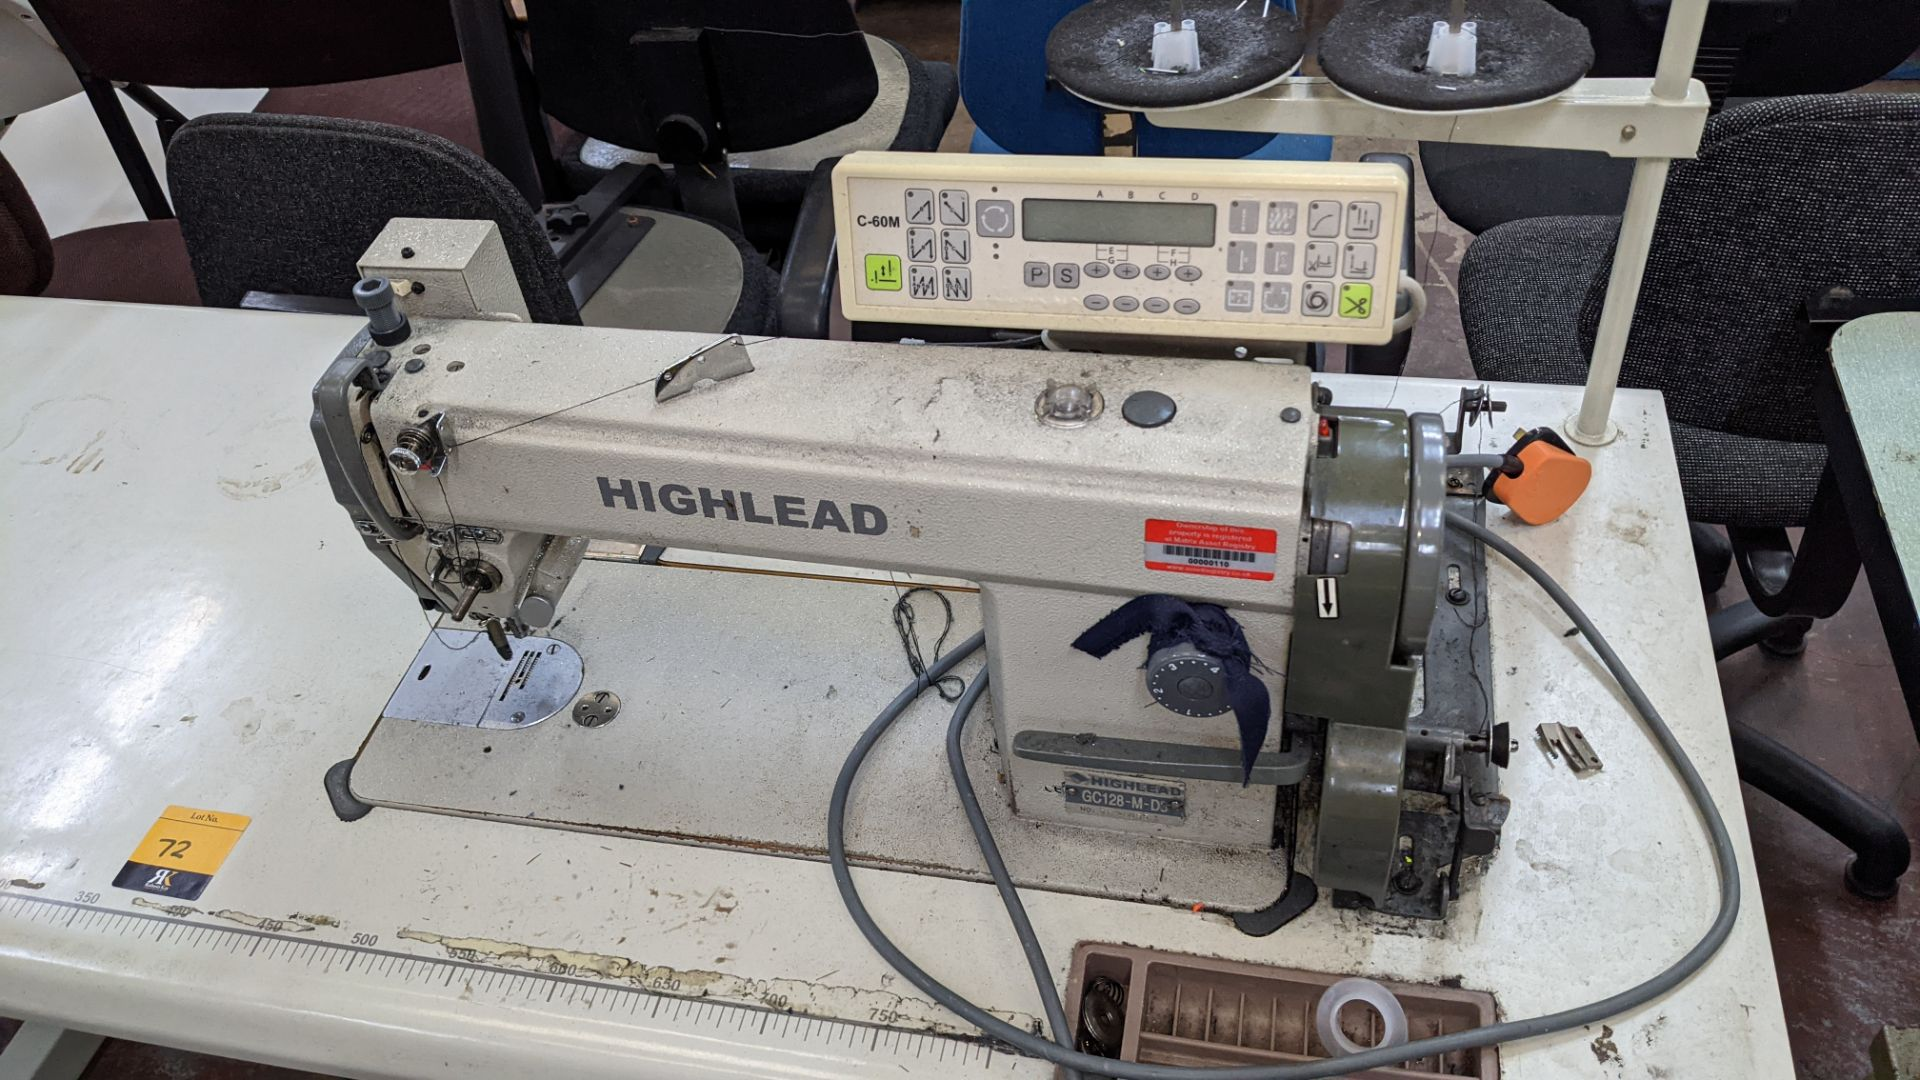 Highlead model GC128-M-D3 sewing machine with model C-60M digital controller - Image 5 of 14